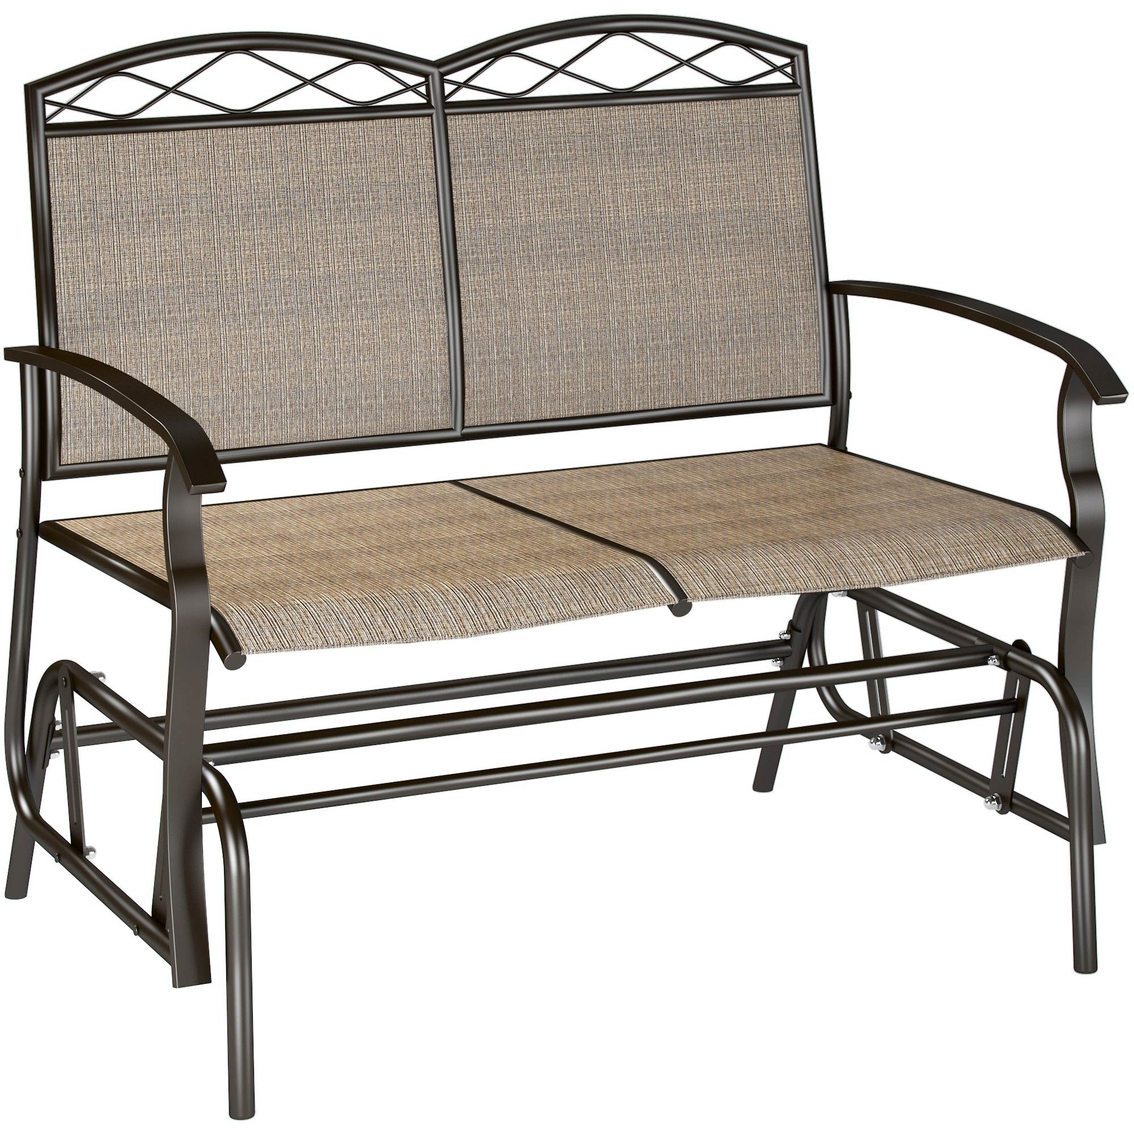 Corliving Patio Double Glider | Outdoor Seating | More Within Iron Double Patio Glider Benches (Image 3 of 25)